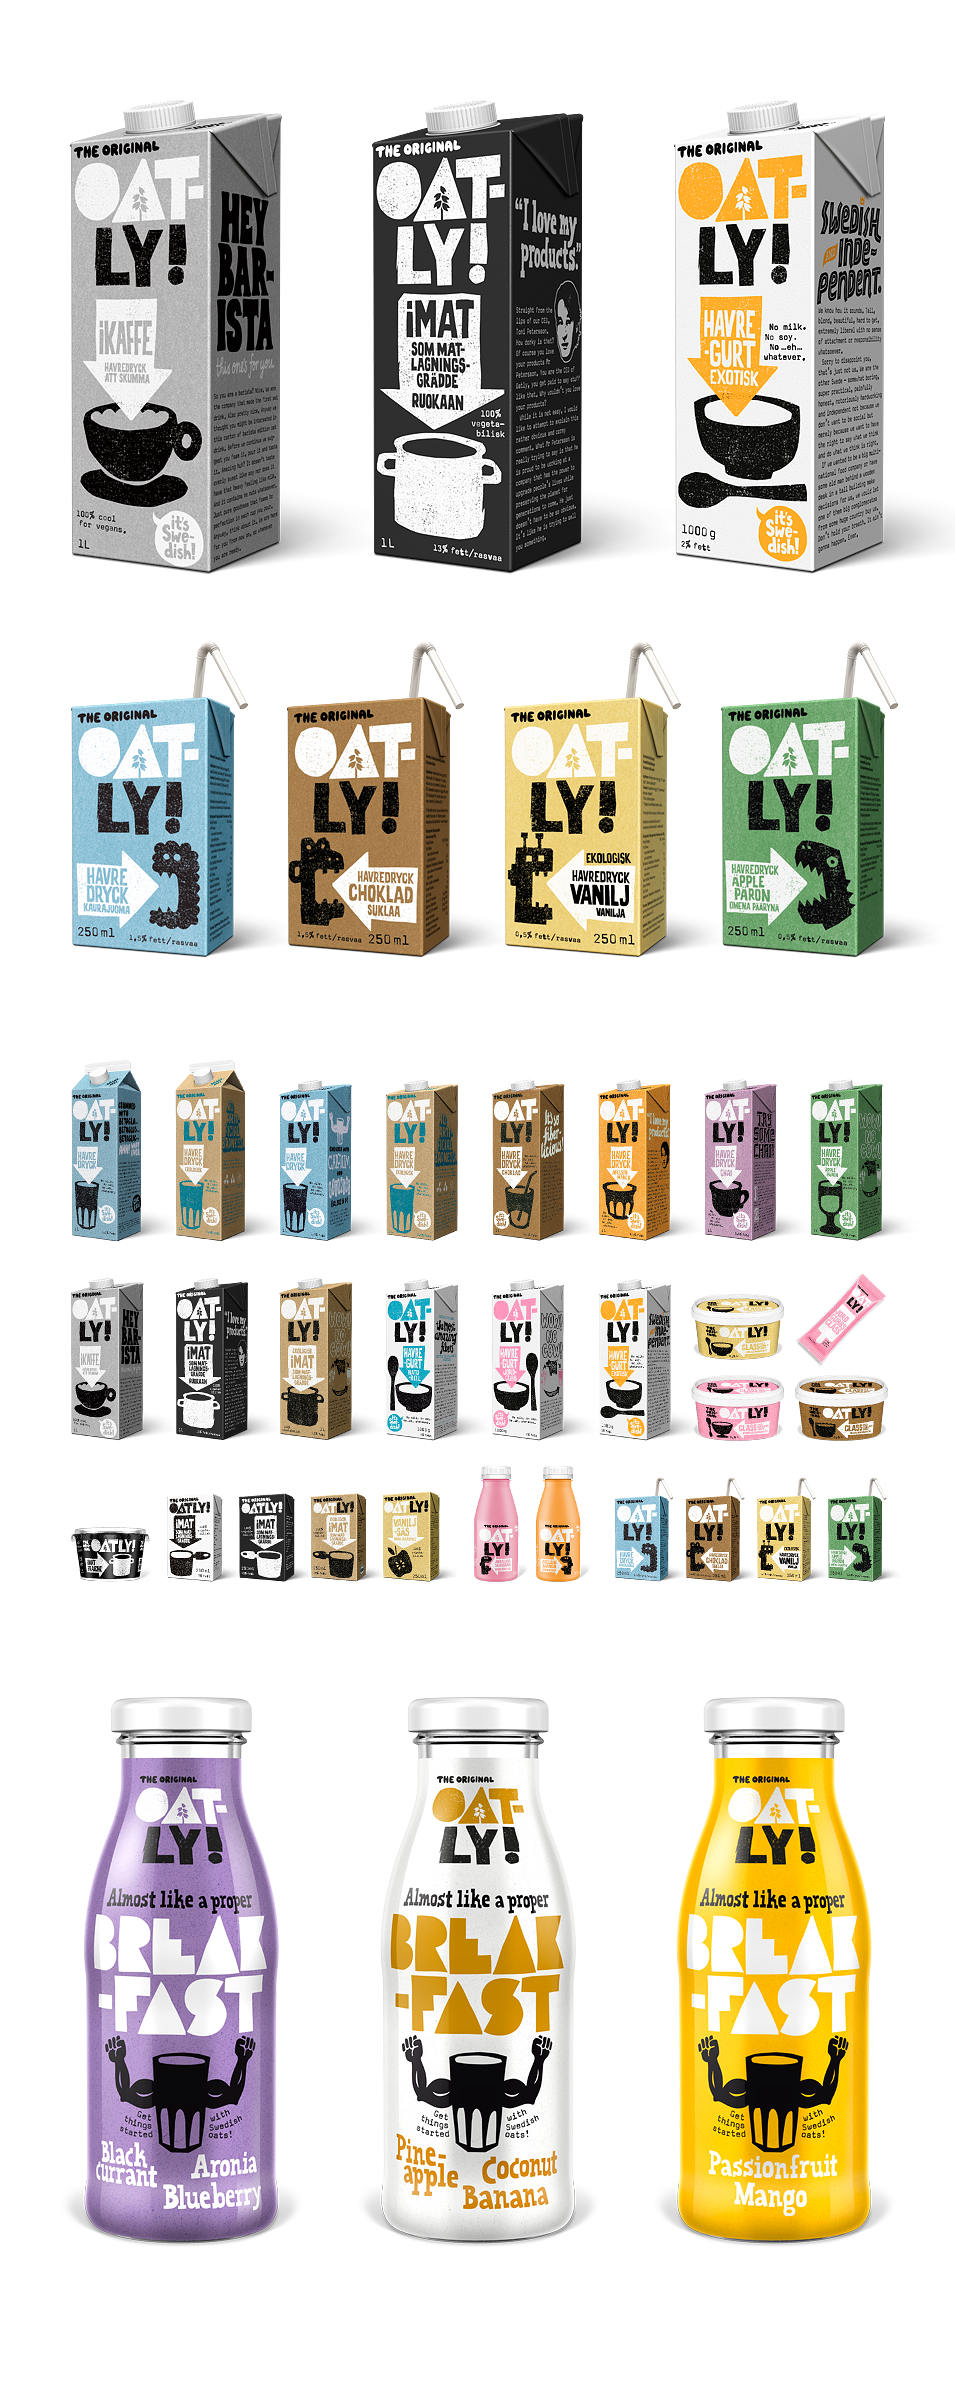 Oatly forp 3